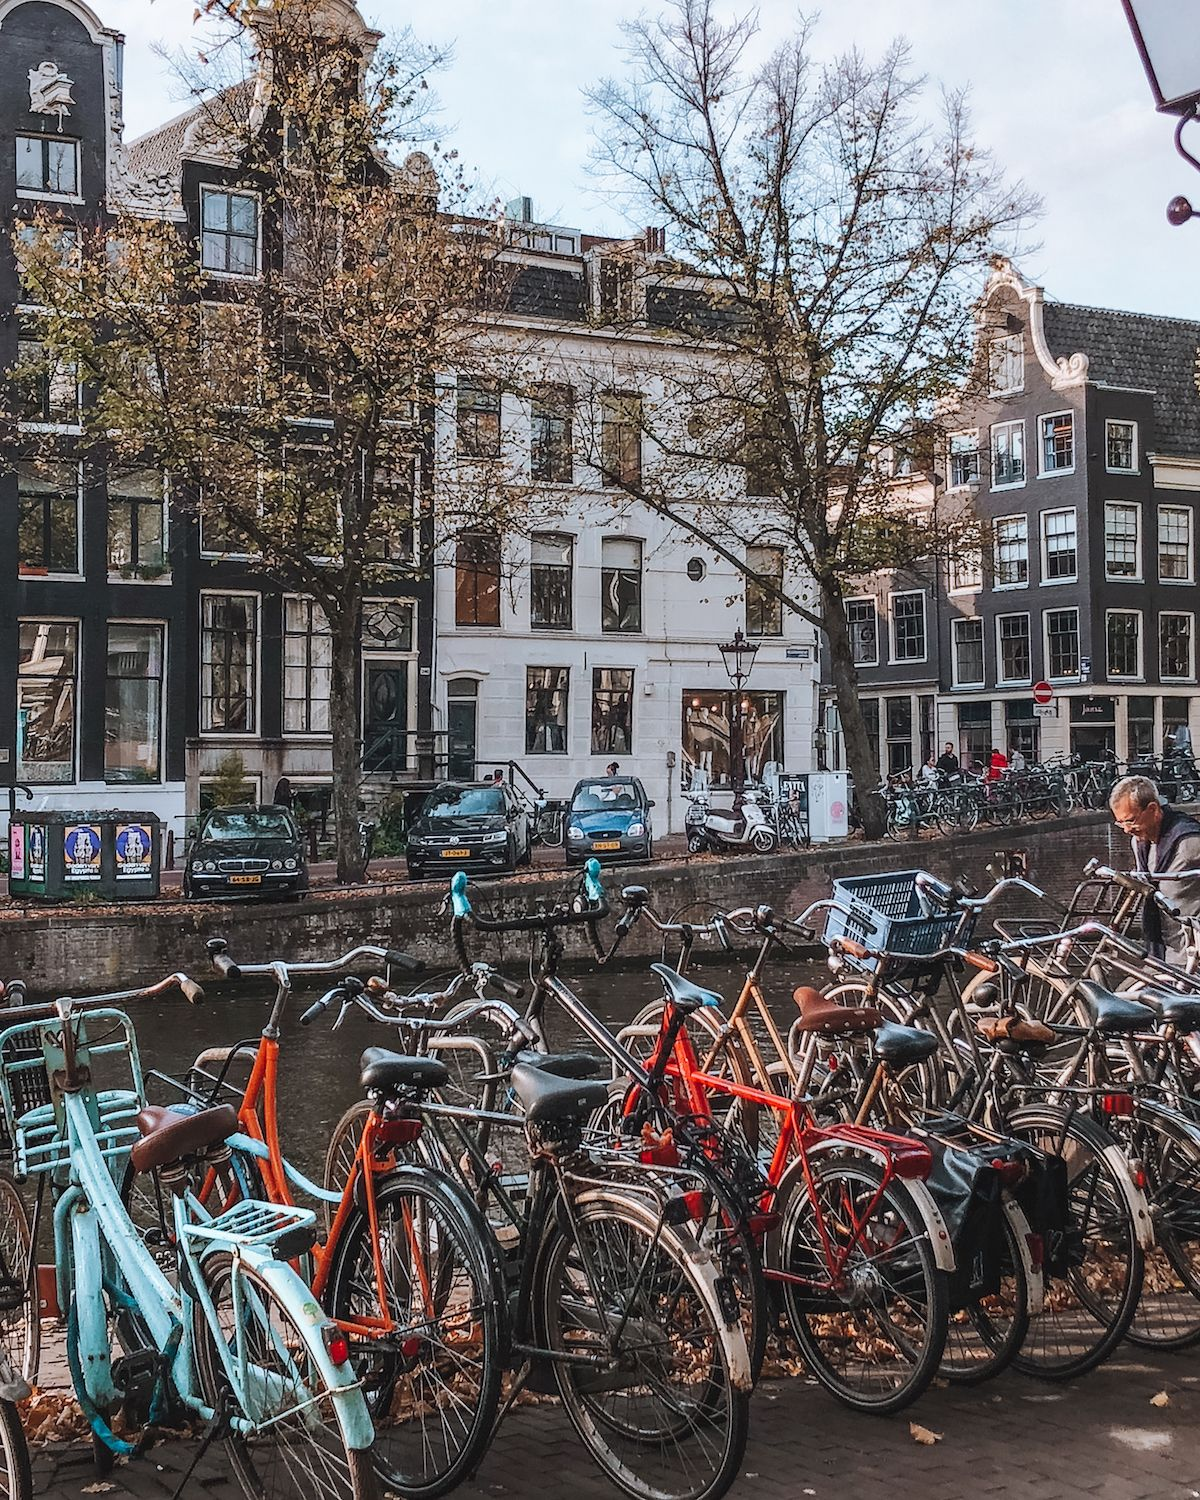 2 Day Amsterdam Itinerary